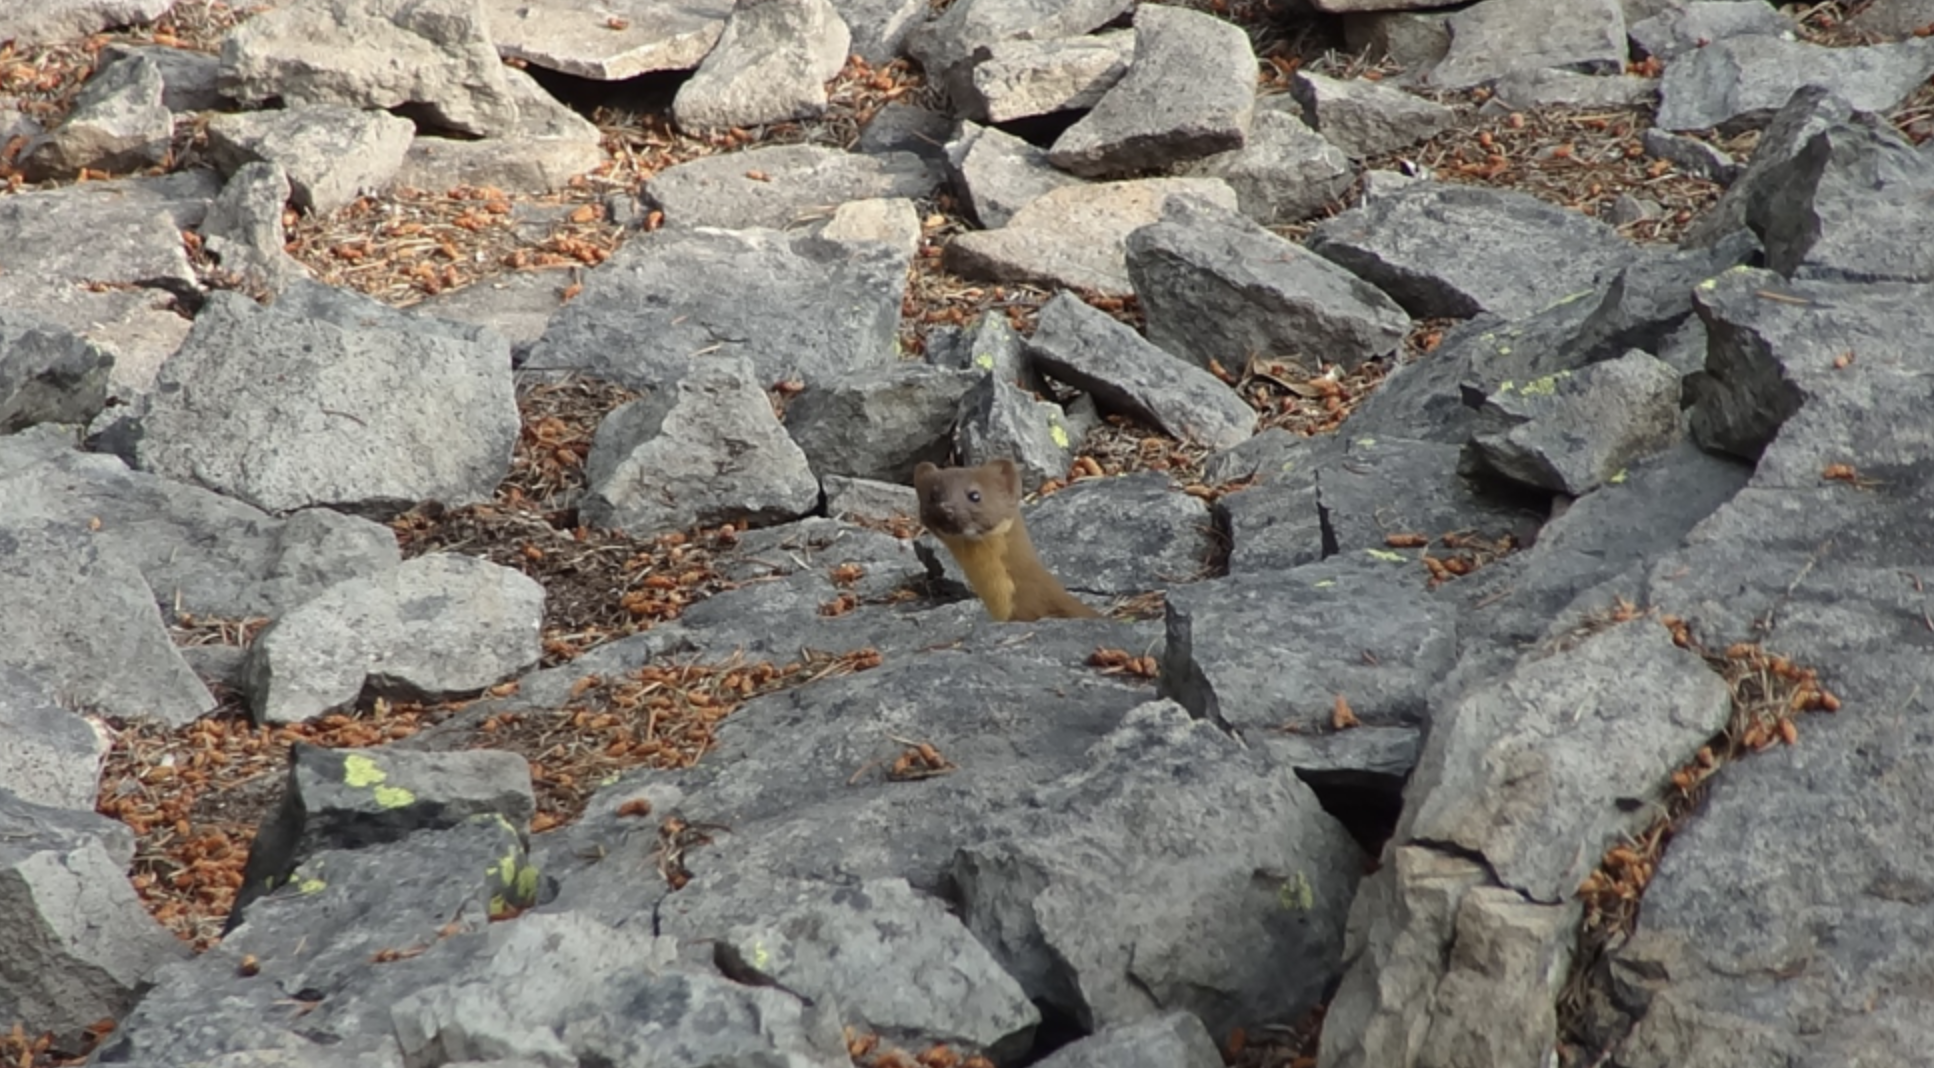 The most common pika predator, the long-tailed weasel, at Vulture Rock. Photo taken by Neil Clayton, student researcher.